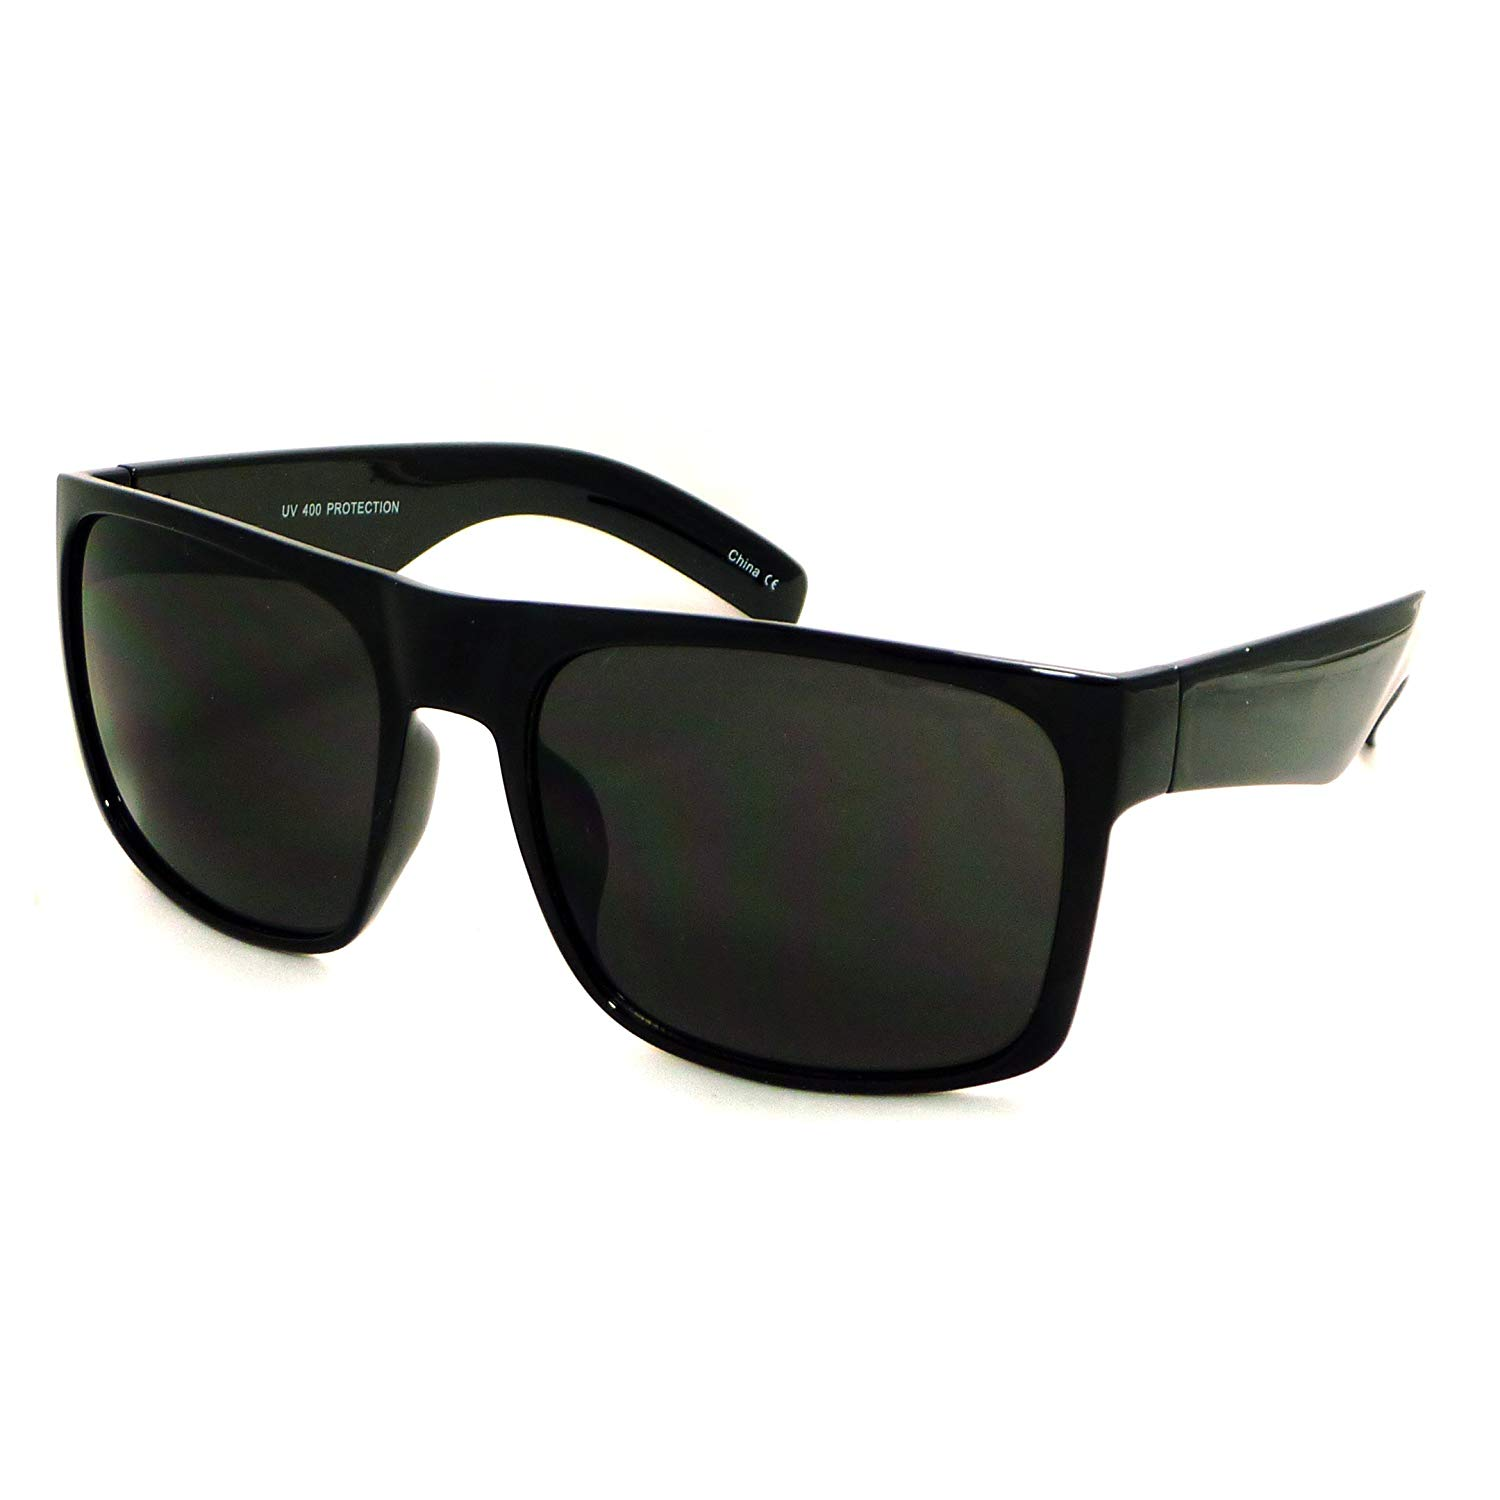 e1f7319a0fee OVERSIZED Super Dark Black Lens Men s Classic Square Frame Sunglasses